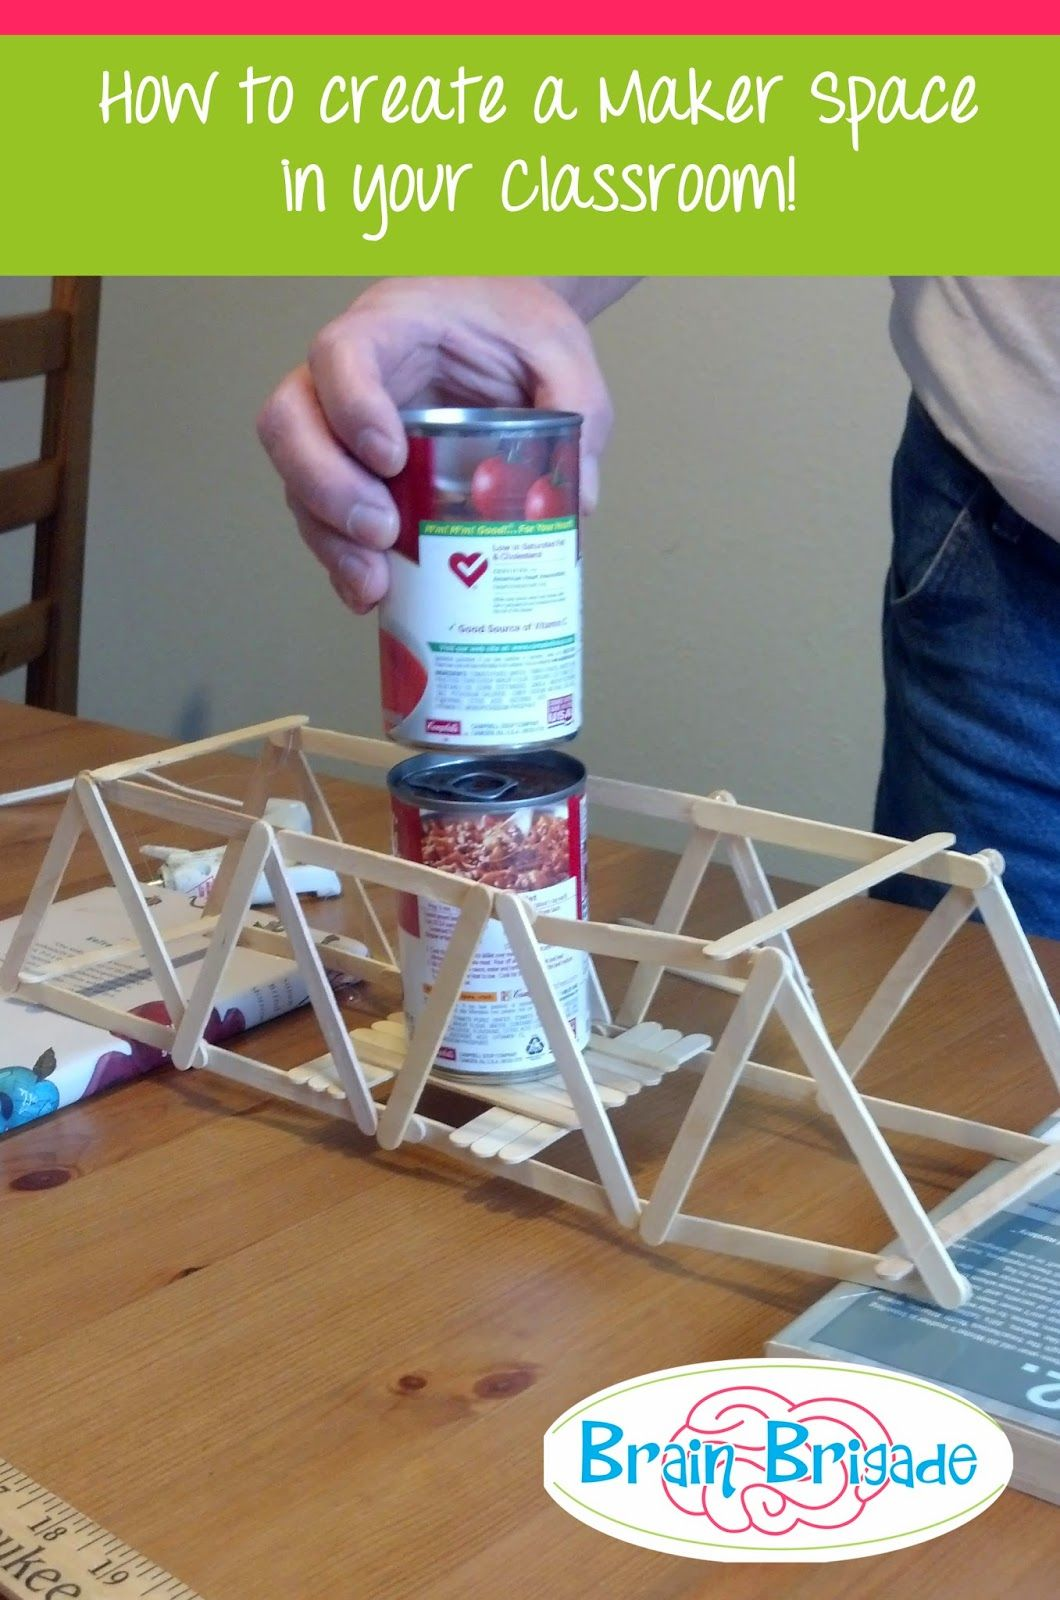 Free Download A Maker Space In Your Classroom